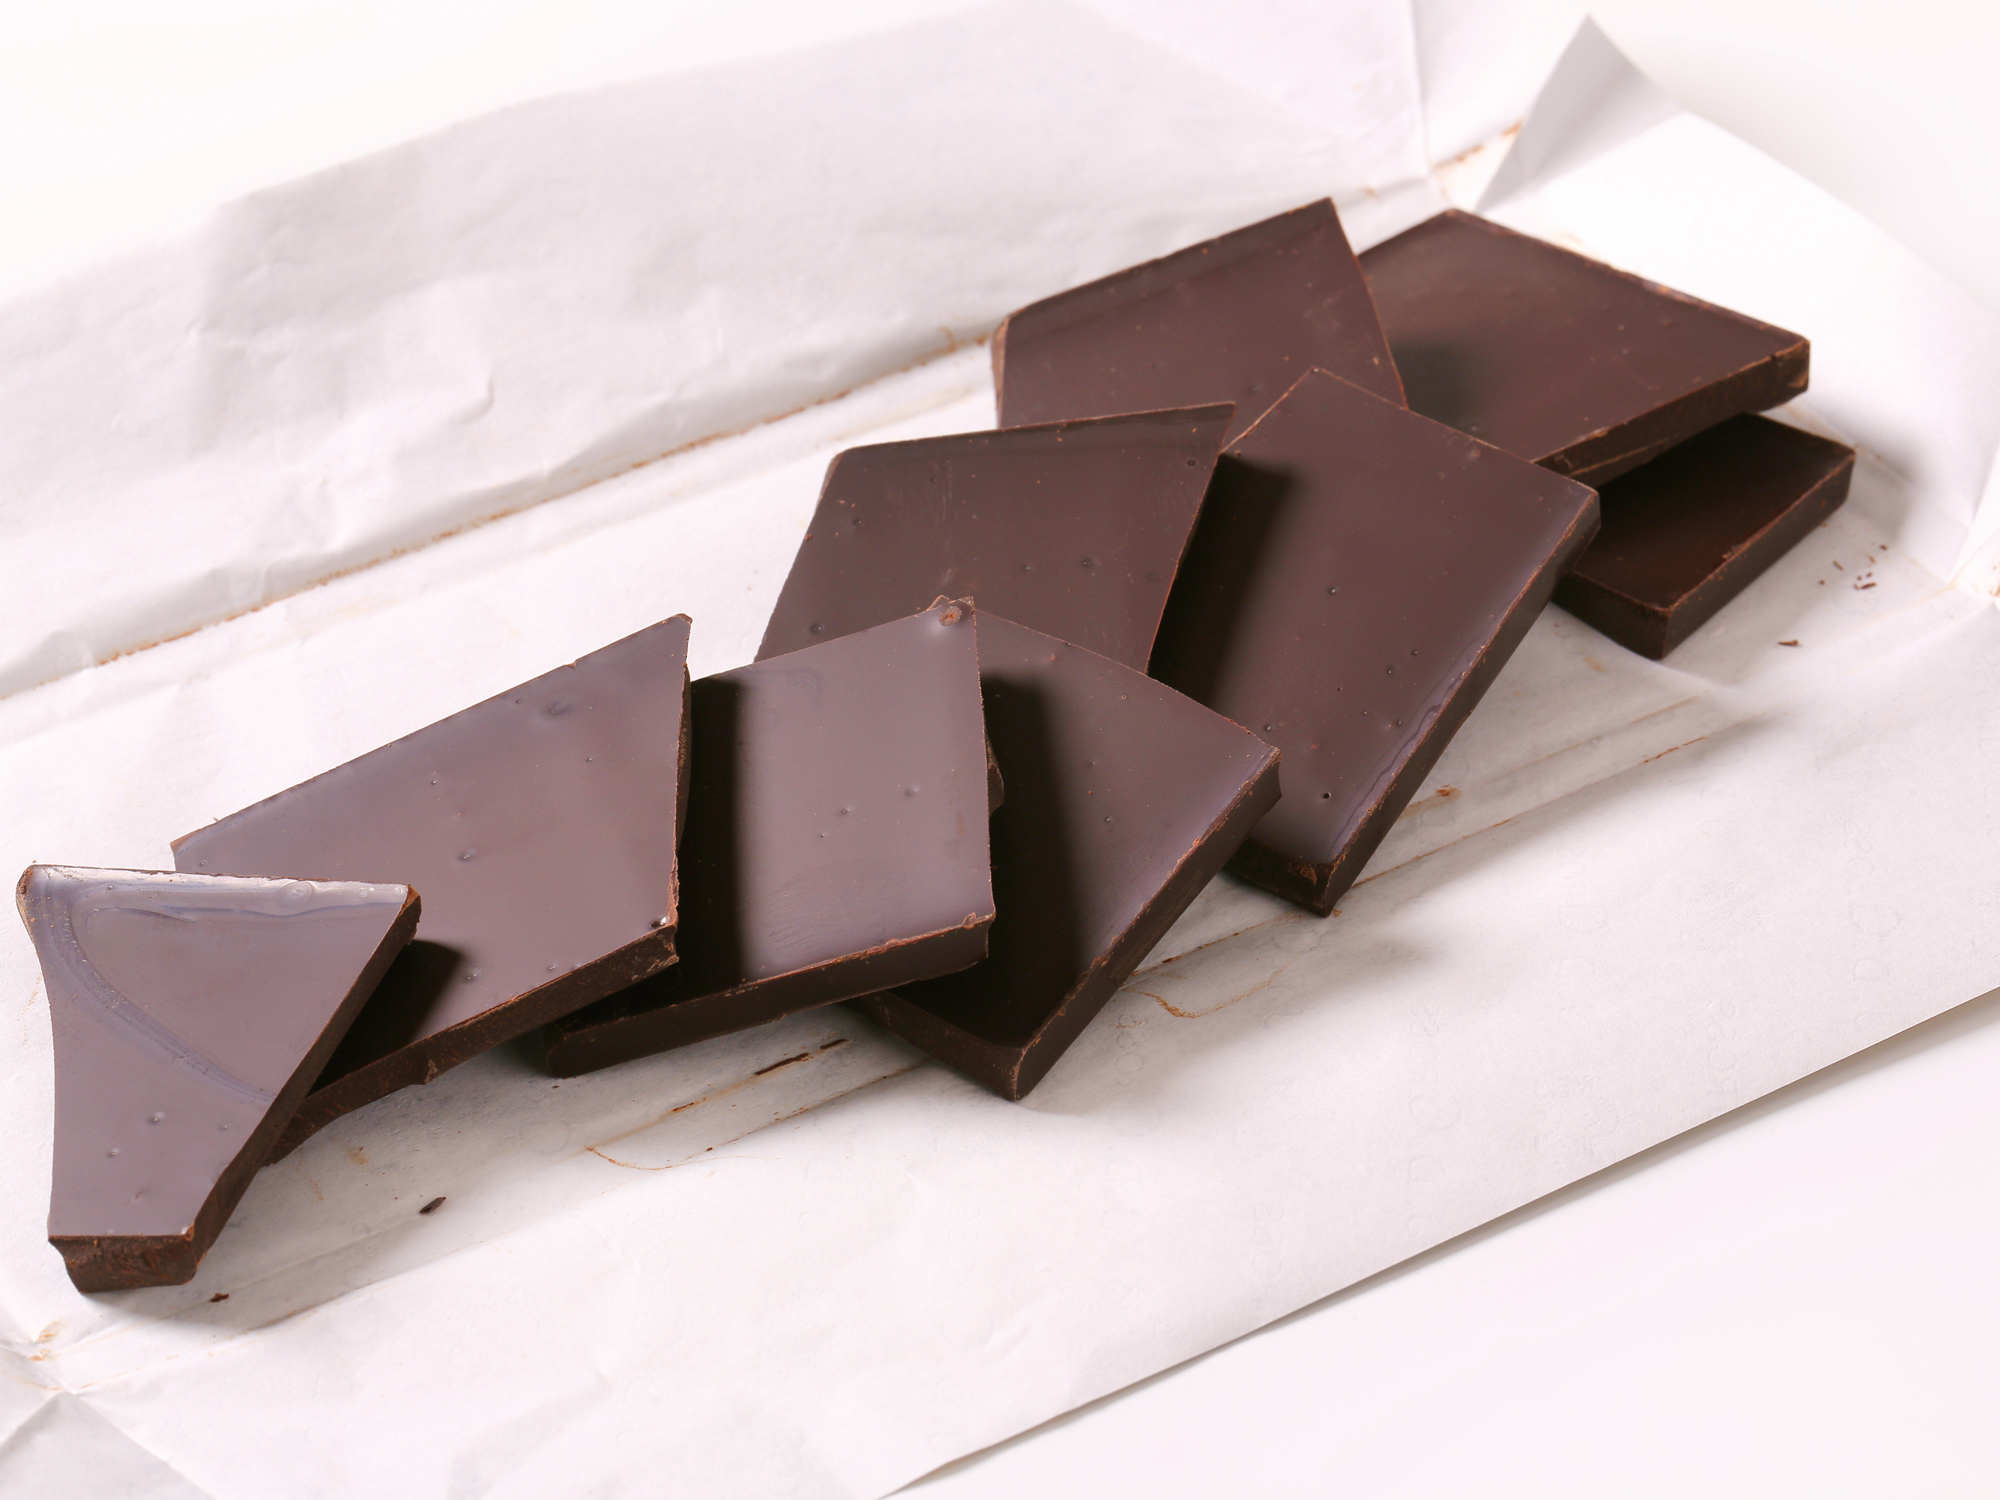 Supersize your stamina with chocolate